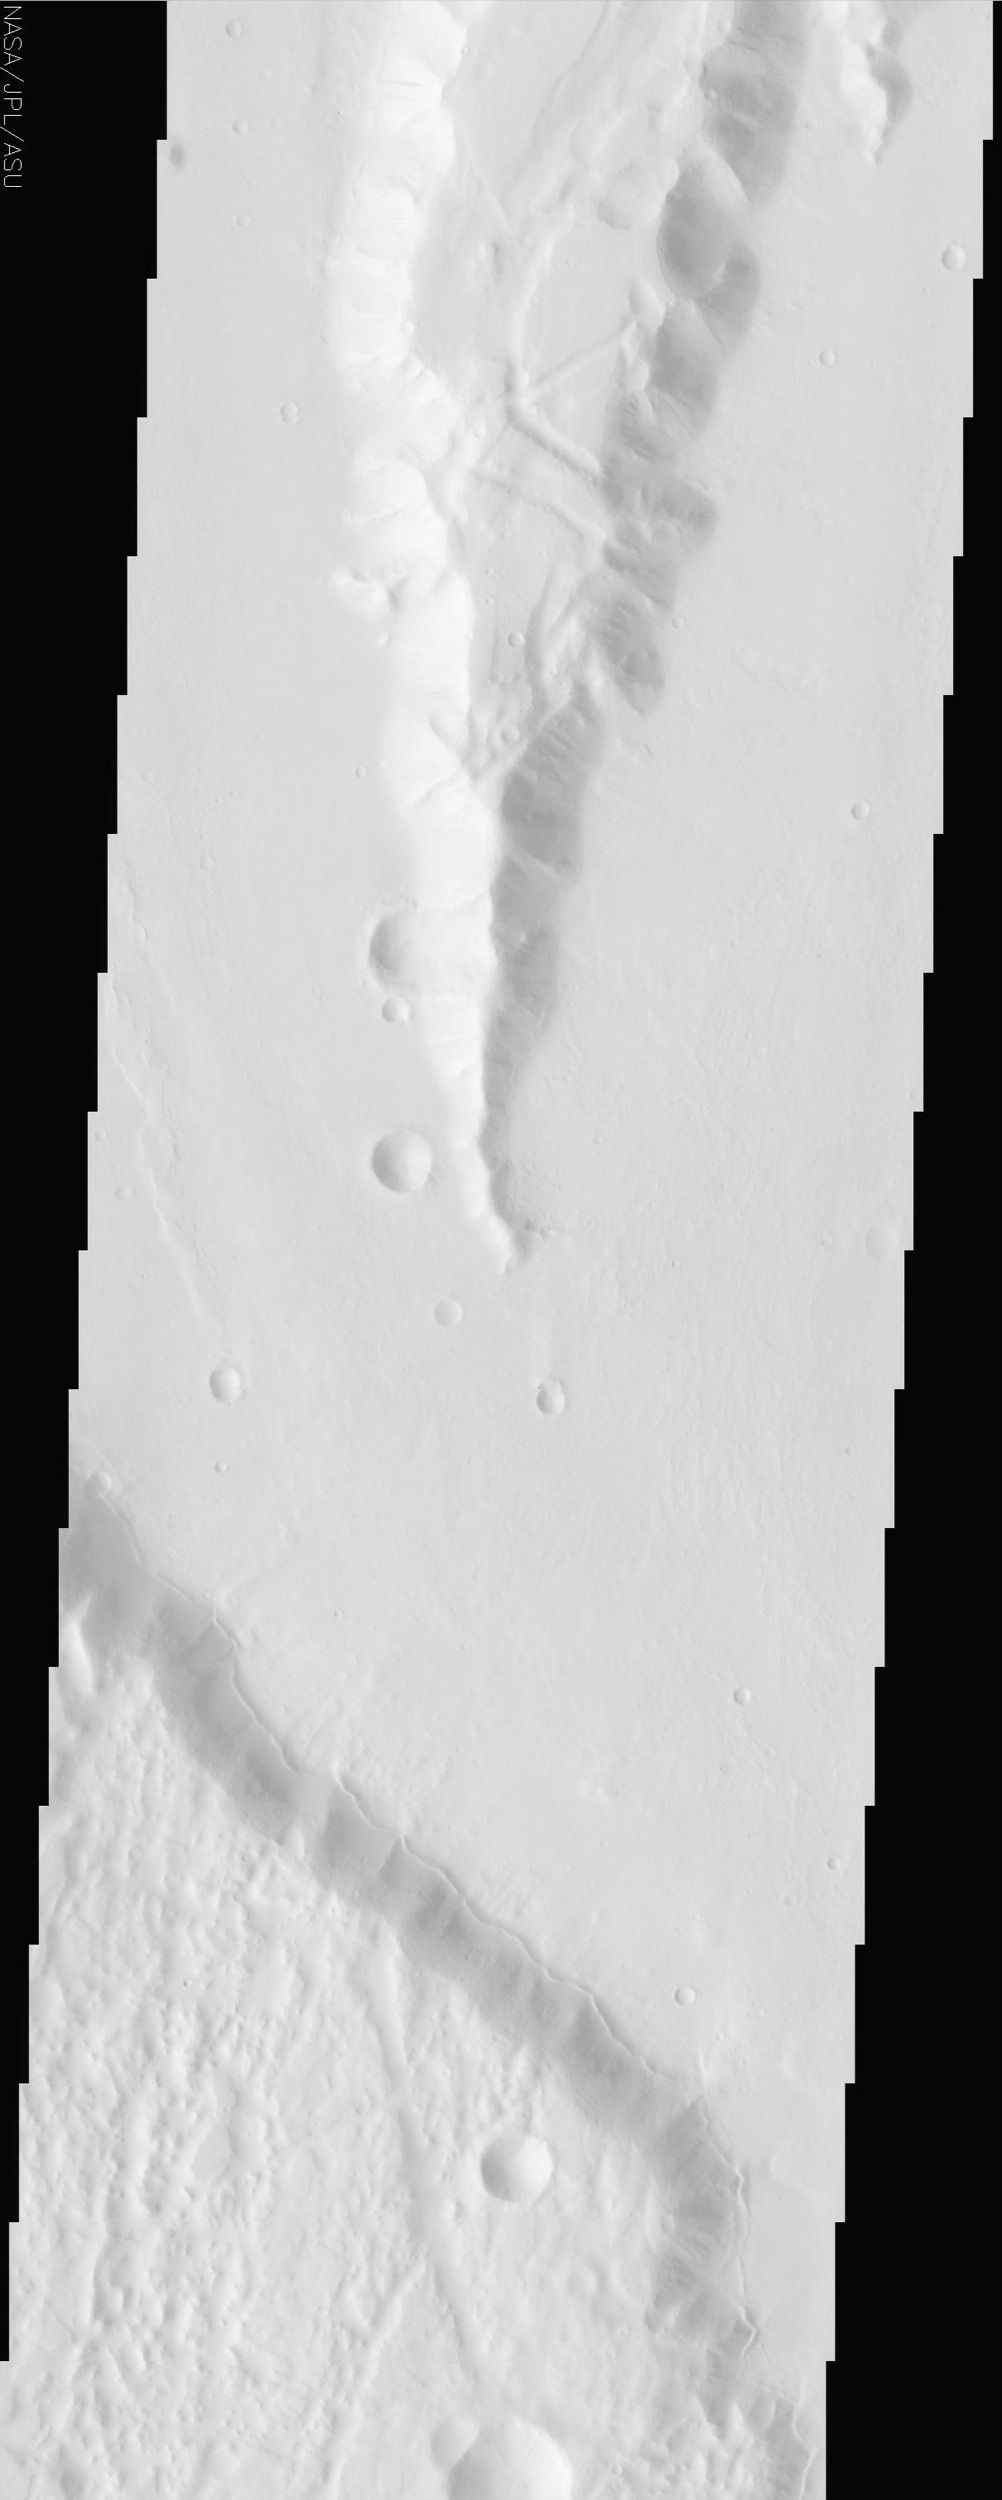 This image by NASA's Mars Odyssey spacecraft is within a region called Lunae Planum, west of NASA's Viking 1 landing site, that marks the transition between the Tharsis rise, a giant volcanic complex, and the northern lowland plains.